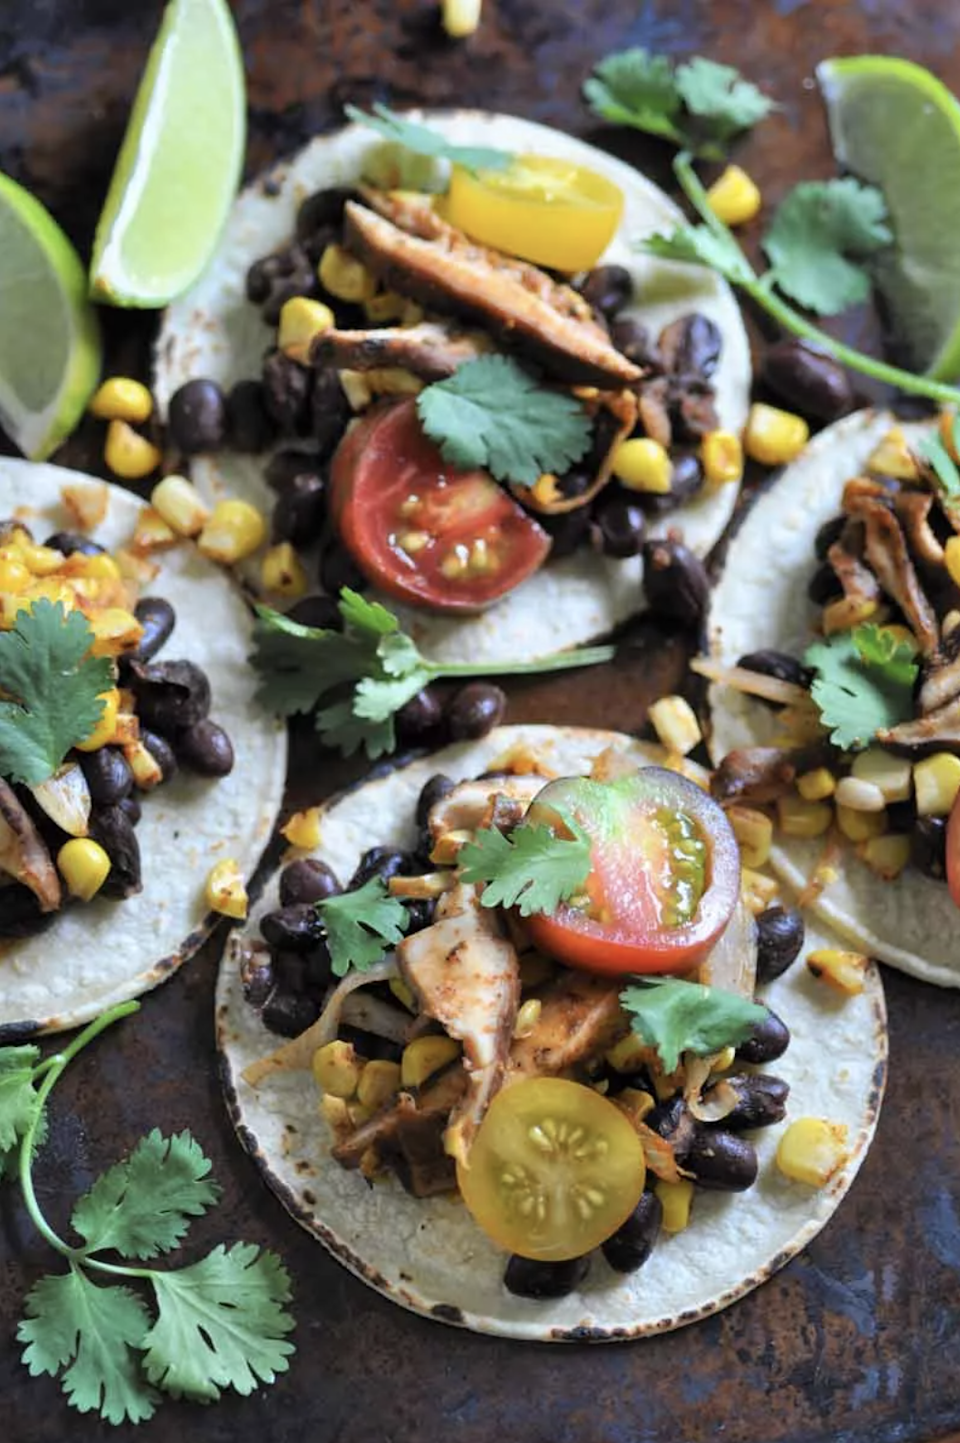 """<p>Highly recommend making these in the summer when you can top 'em with perfectly ripe and juicy cherry tomatoes.</p> <p>Get the recipe <a href=""""https://www.veganosity.com/spicy-black-bean-shitake-mushroom-street-tacos/"""" rel=""""nofollow noopener"""" target=""""_blank"""" data-ylk=""""slk:here"""" class=""""link rapid-noclick-resp"""">here</a>.</p> <p><strong>Related:</strong></p> <ul> <li><a href=""""https://www.self.com/gallery/healthy-summer-recipes?mbid=synd_yahoo_rss"""" rel=""""nofollow noopener"""" target=""""_blank"""" data-ylk=""""slk:40 Healthy Summer Recipes You'll Want to Make All Season Long"""" class=""""link rapid-noclick-resp"""">40 Healthy Summer Recipes You'll Want to Make All Season Long</a></li> <li><a href=""""https://www.self.com/gallery/healthy-smoothie-recipes?mbid=synd_yahoo_rss"""" rel=""""nofollow noopener"""" target=""""_blank"""" data-ylk=""""slk:31 Healthy Smoothie Recipes That Are Fast and Filling"""" class=""""link rapid-noclick-resp"""">31 Healthy Smoothie Recipes That Are Fast and Filling</a></li> <li><a href=""""https://www.self.com/gallery/meatless-instant-pot-dinners?mbid=synd_yahoo_rss"""" rel=""""nofollow noopener"""" target=""""_blank"""" data-ylk=""""slk:25 Healthy Vegetarian Instant Pot Recipes"""" class=""""link rapid-noclick-resp"""">25 Healthy Vegetarian Instant Pot Recipes</a></li> </ul>"""